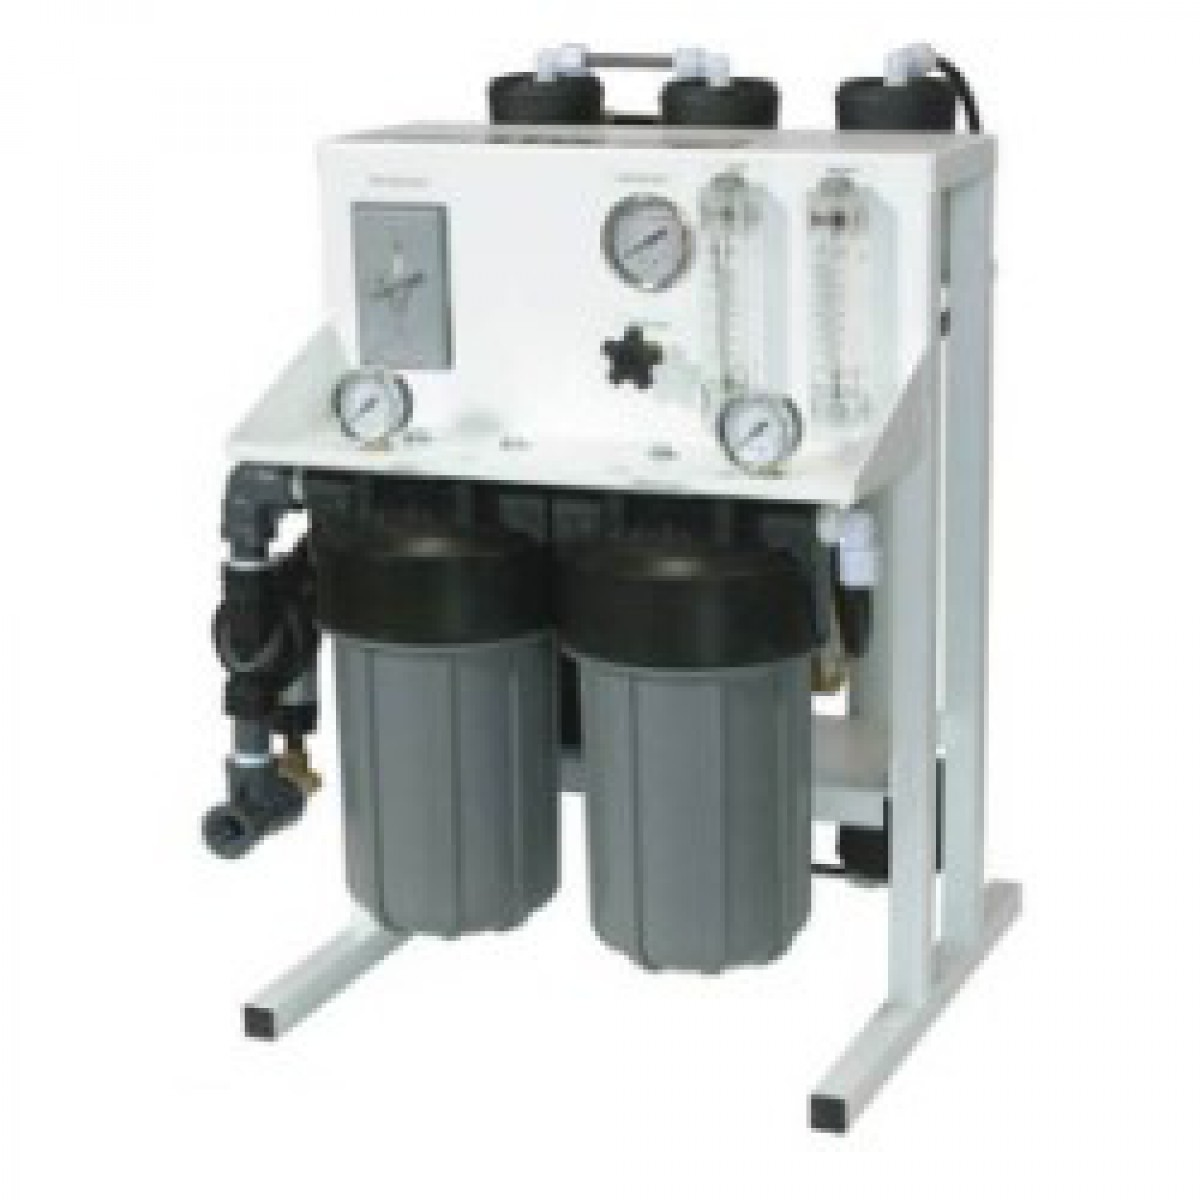 ro ultratec titan 1000 commercial reverse osmosis system. Black Bedroom Furniture Sets. Home Design Ideas